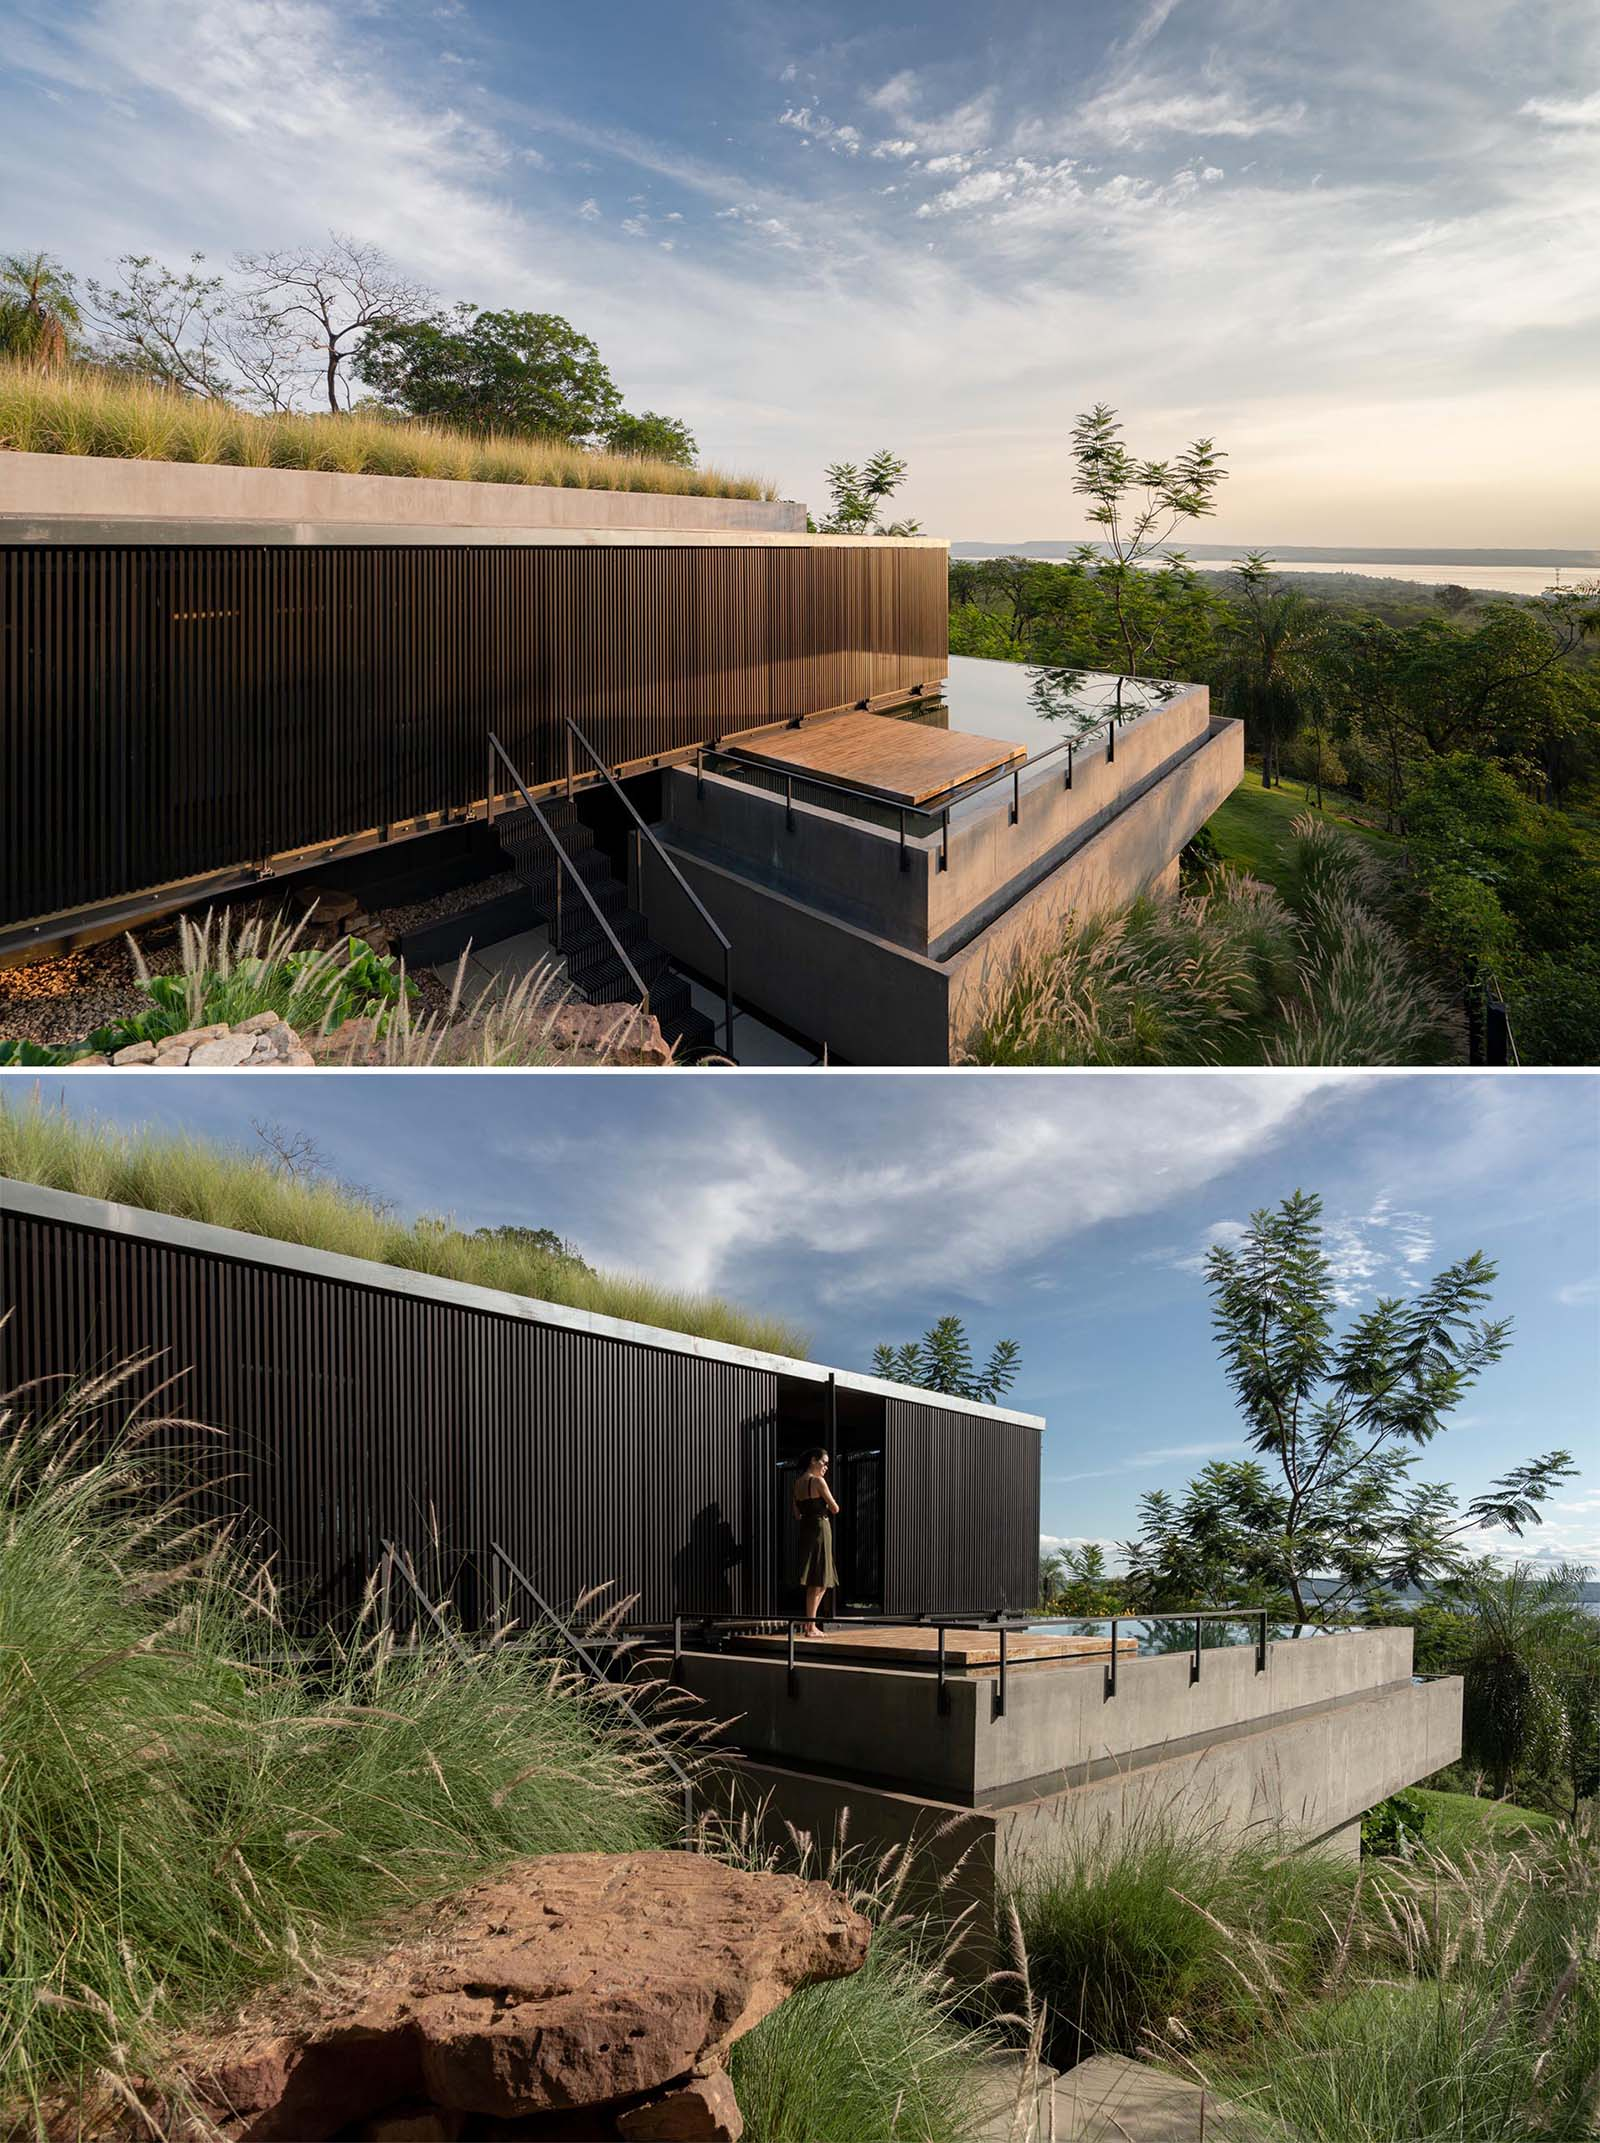 A modern house with a green roof, an infinity edge swimming pool, and black screens that wrap around the exterior.